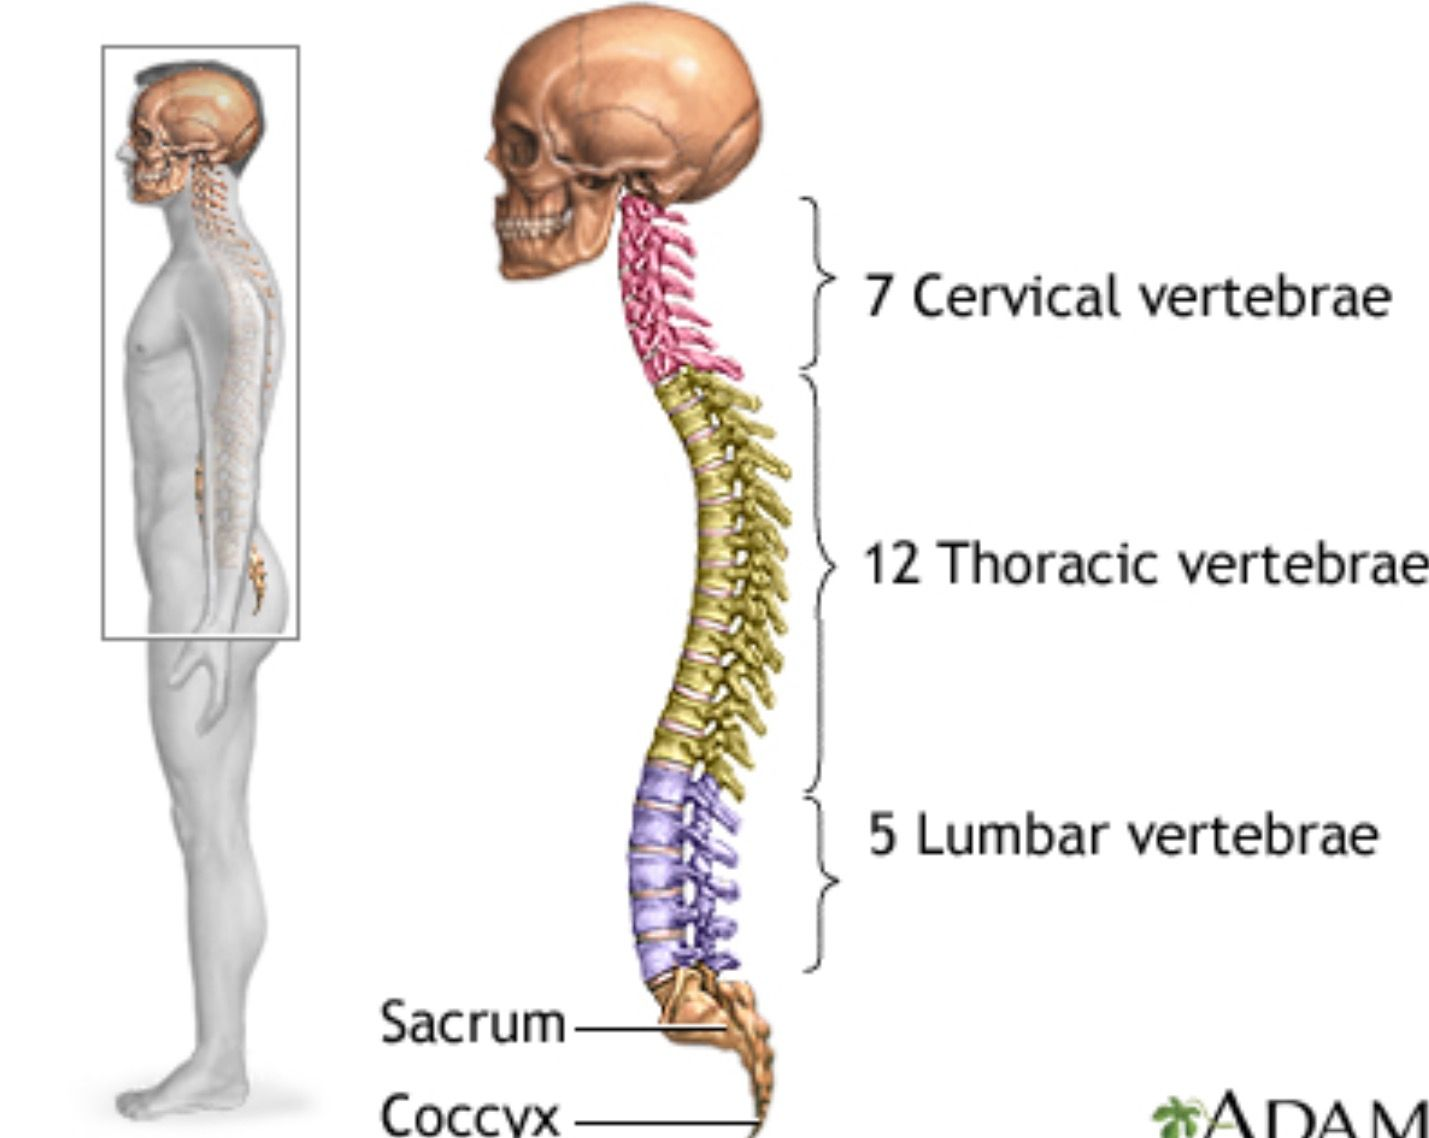 Pin by Cloudsurfer on Anatomy & Physiology | Pinterest